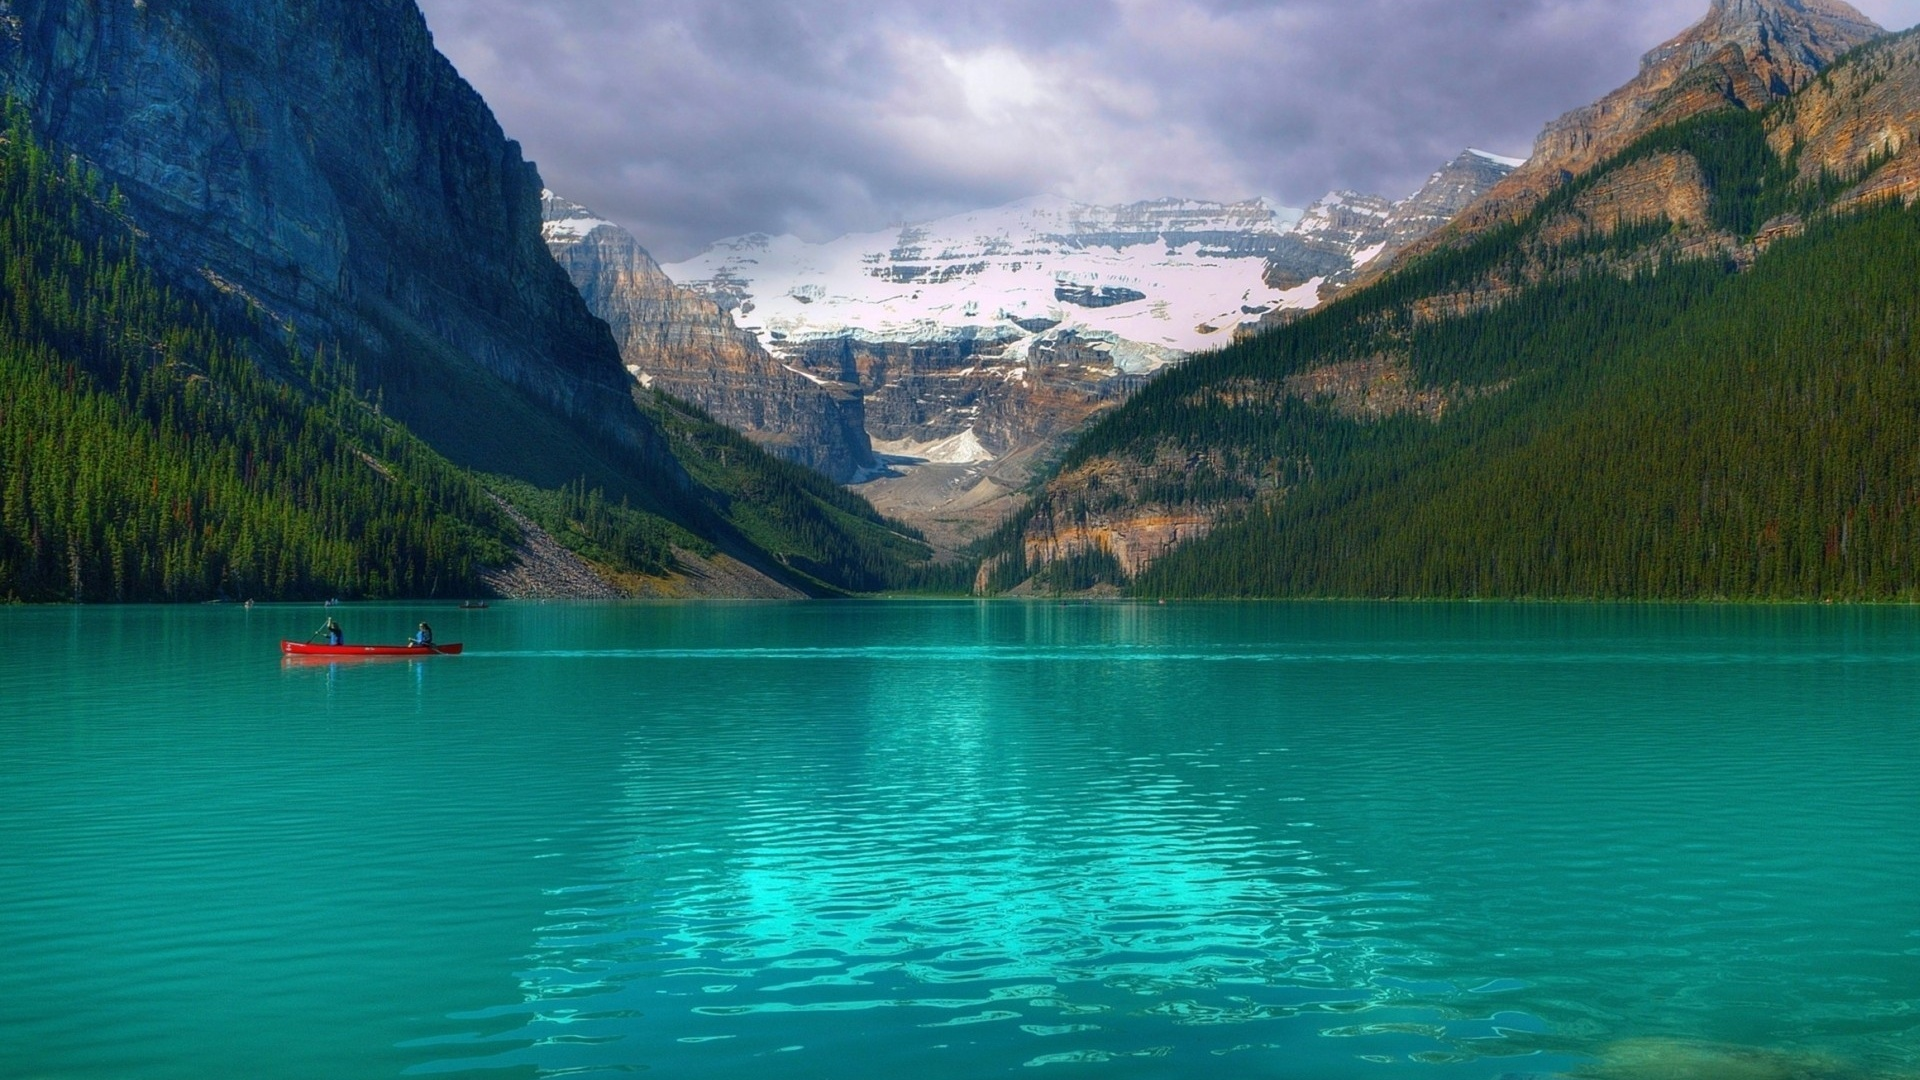 1920x1080 emerald lake louise canada desktop pc and mac for Home wallpaper canada